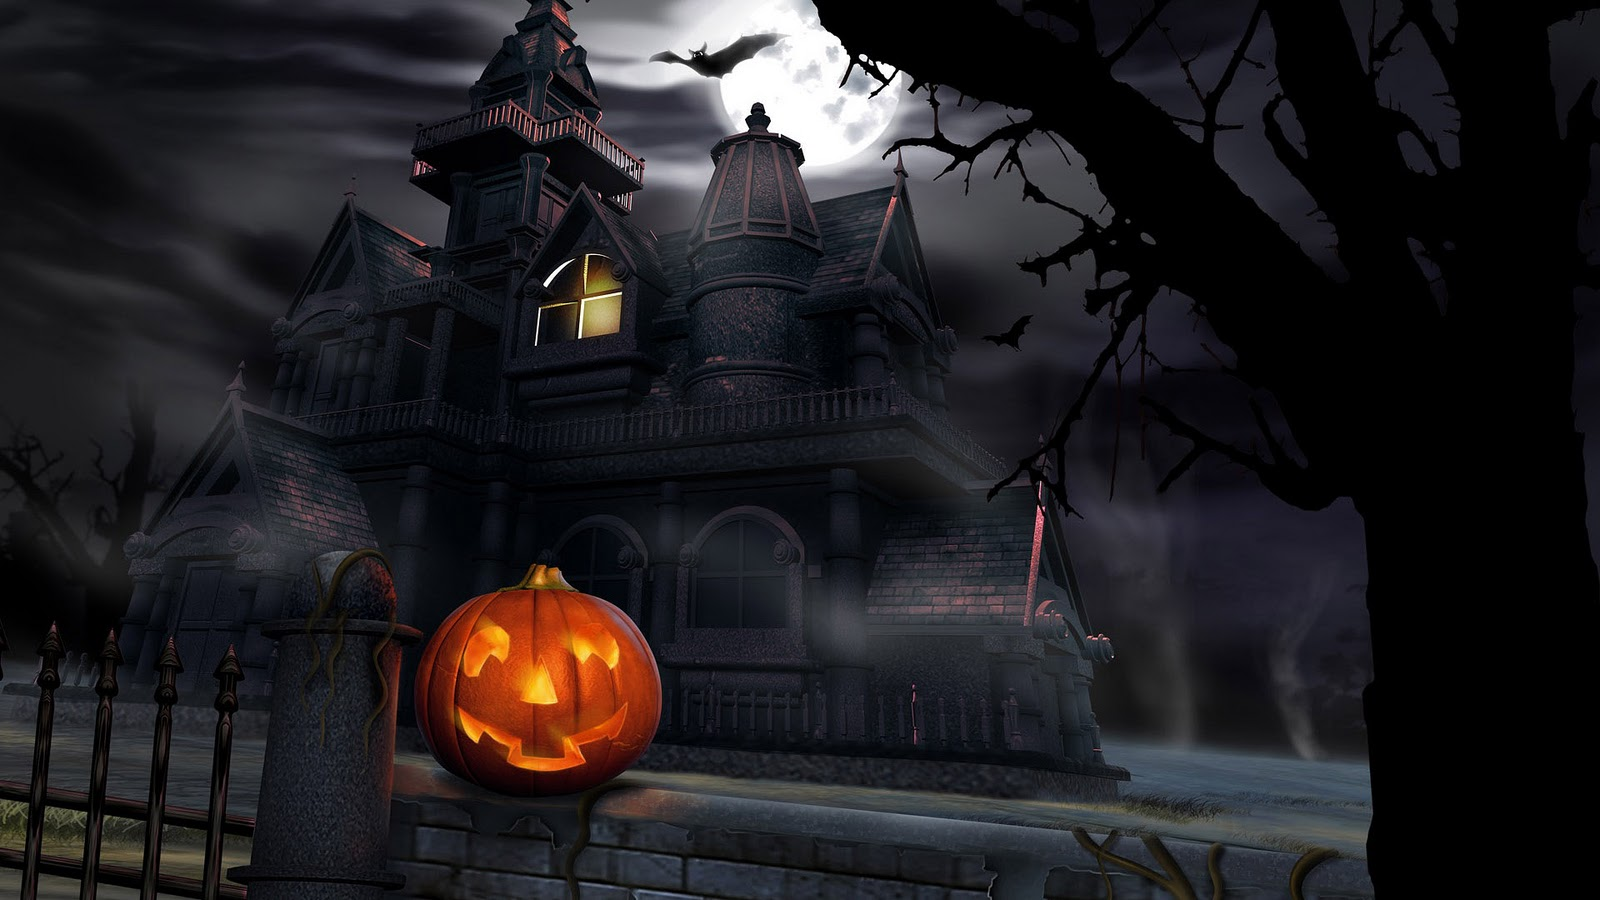 http://1.bp.blogspot.com/-nHbout3e5oA/UI2JVSAGMFI/AAAAAAAAGvY/R93VNroVro4/s1600/Best-top-desktop-halloween-wallpapers-hd-halloween-wallpaper-picture-image-photo-1+(1).jpg